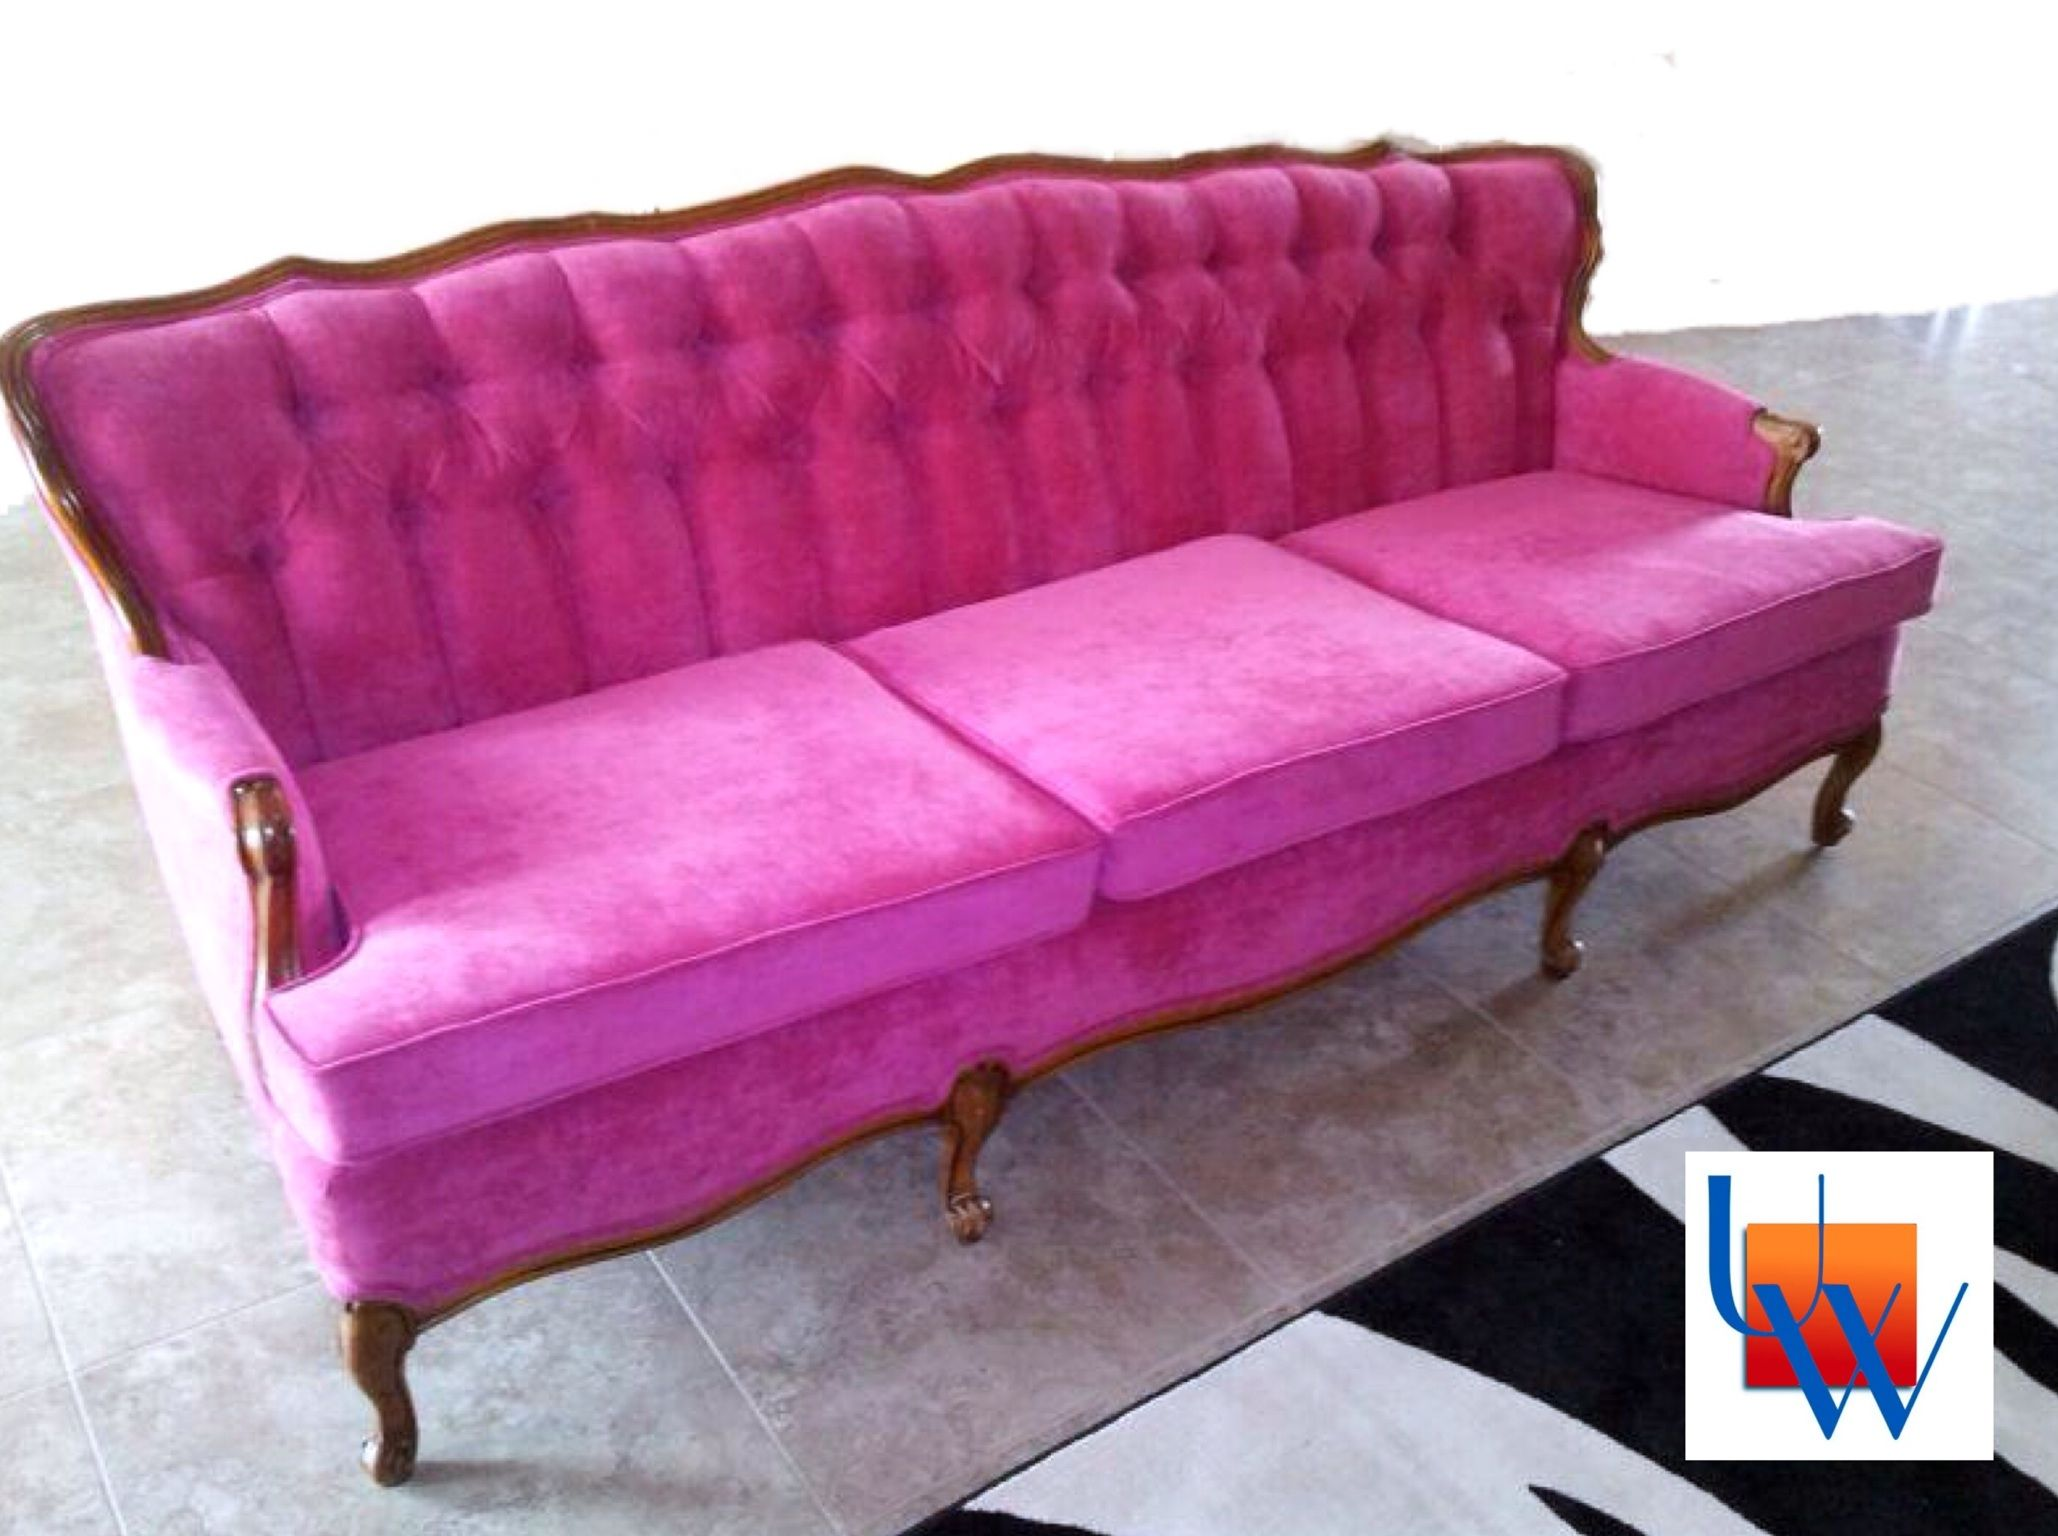 Custom Sectional Sofas Las Vegas What Can I Use To Clean My Cream Leather Sofa Pin Oleh Upholstery Works Di Furniture